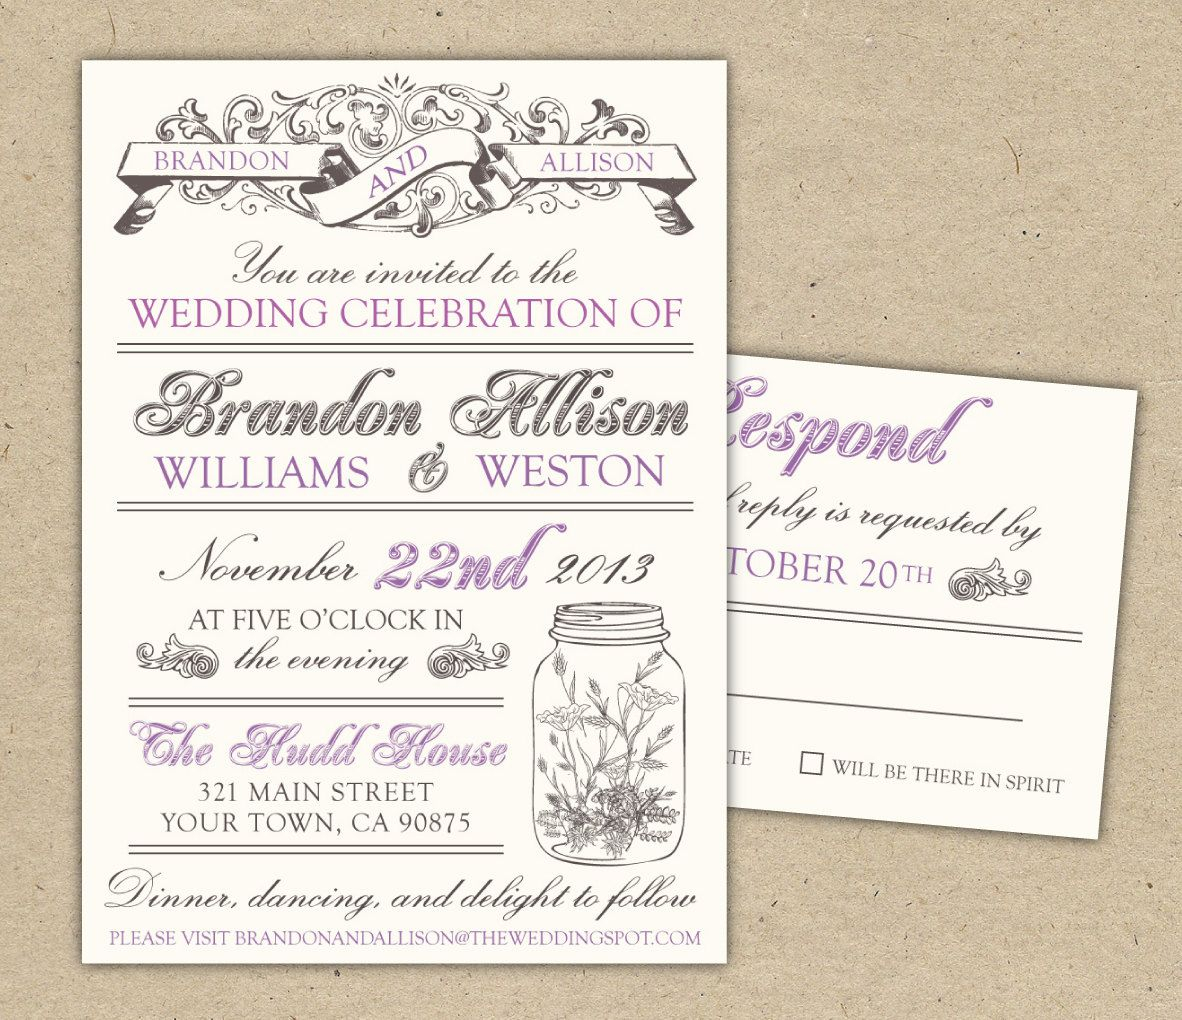 32+ Amazing Image of Free Printable Wedding Invitation Templates Download